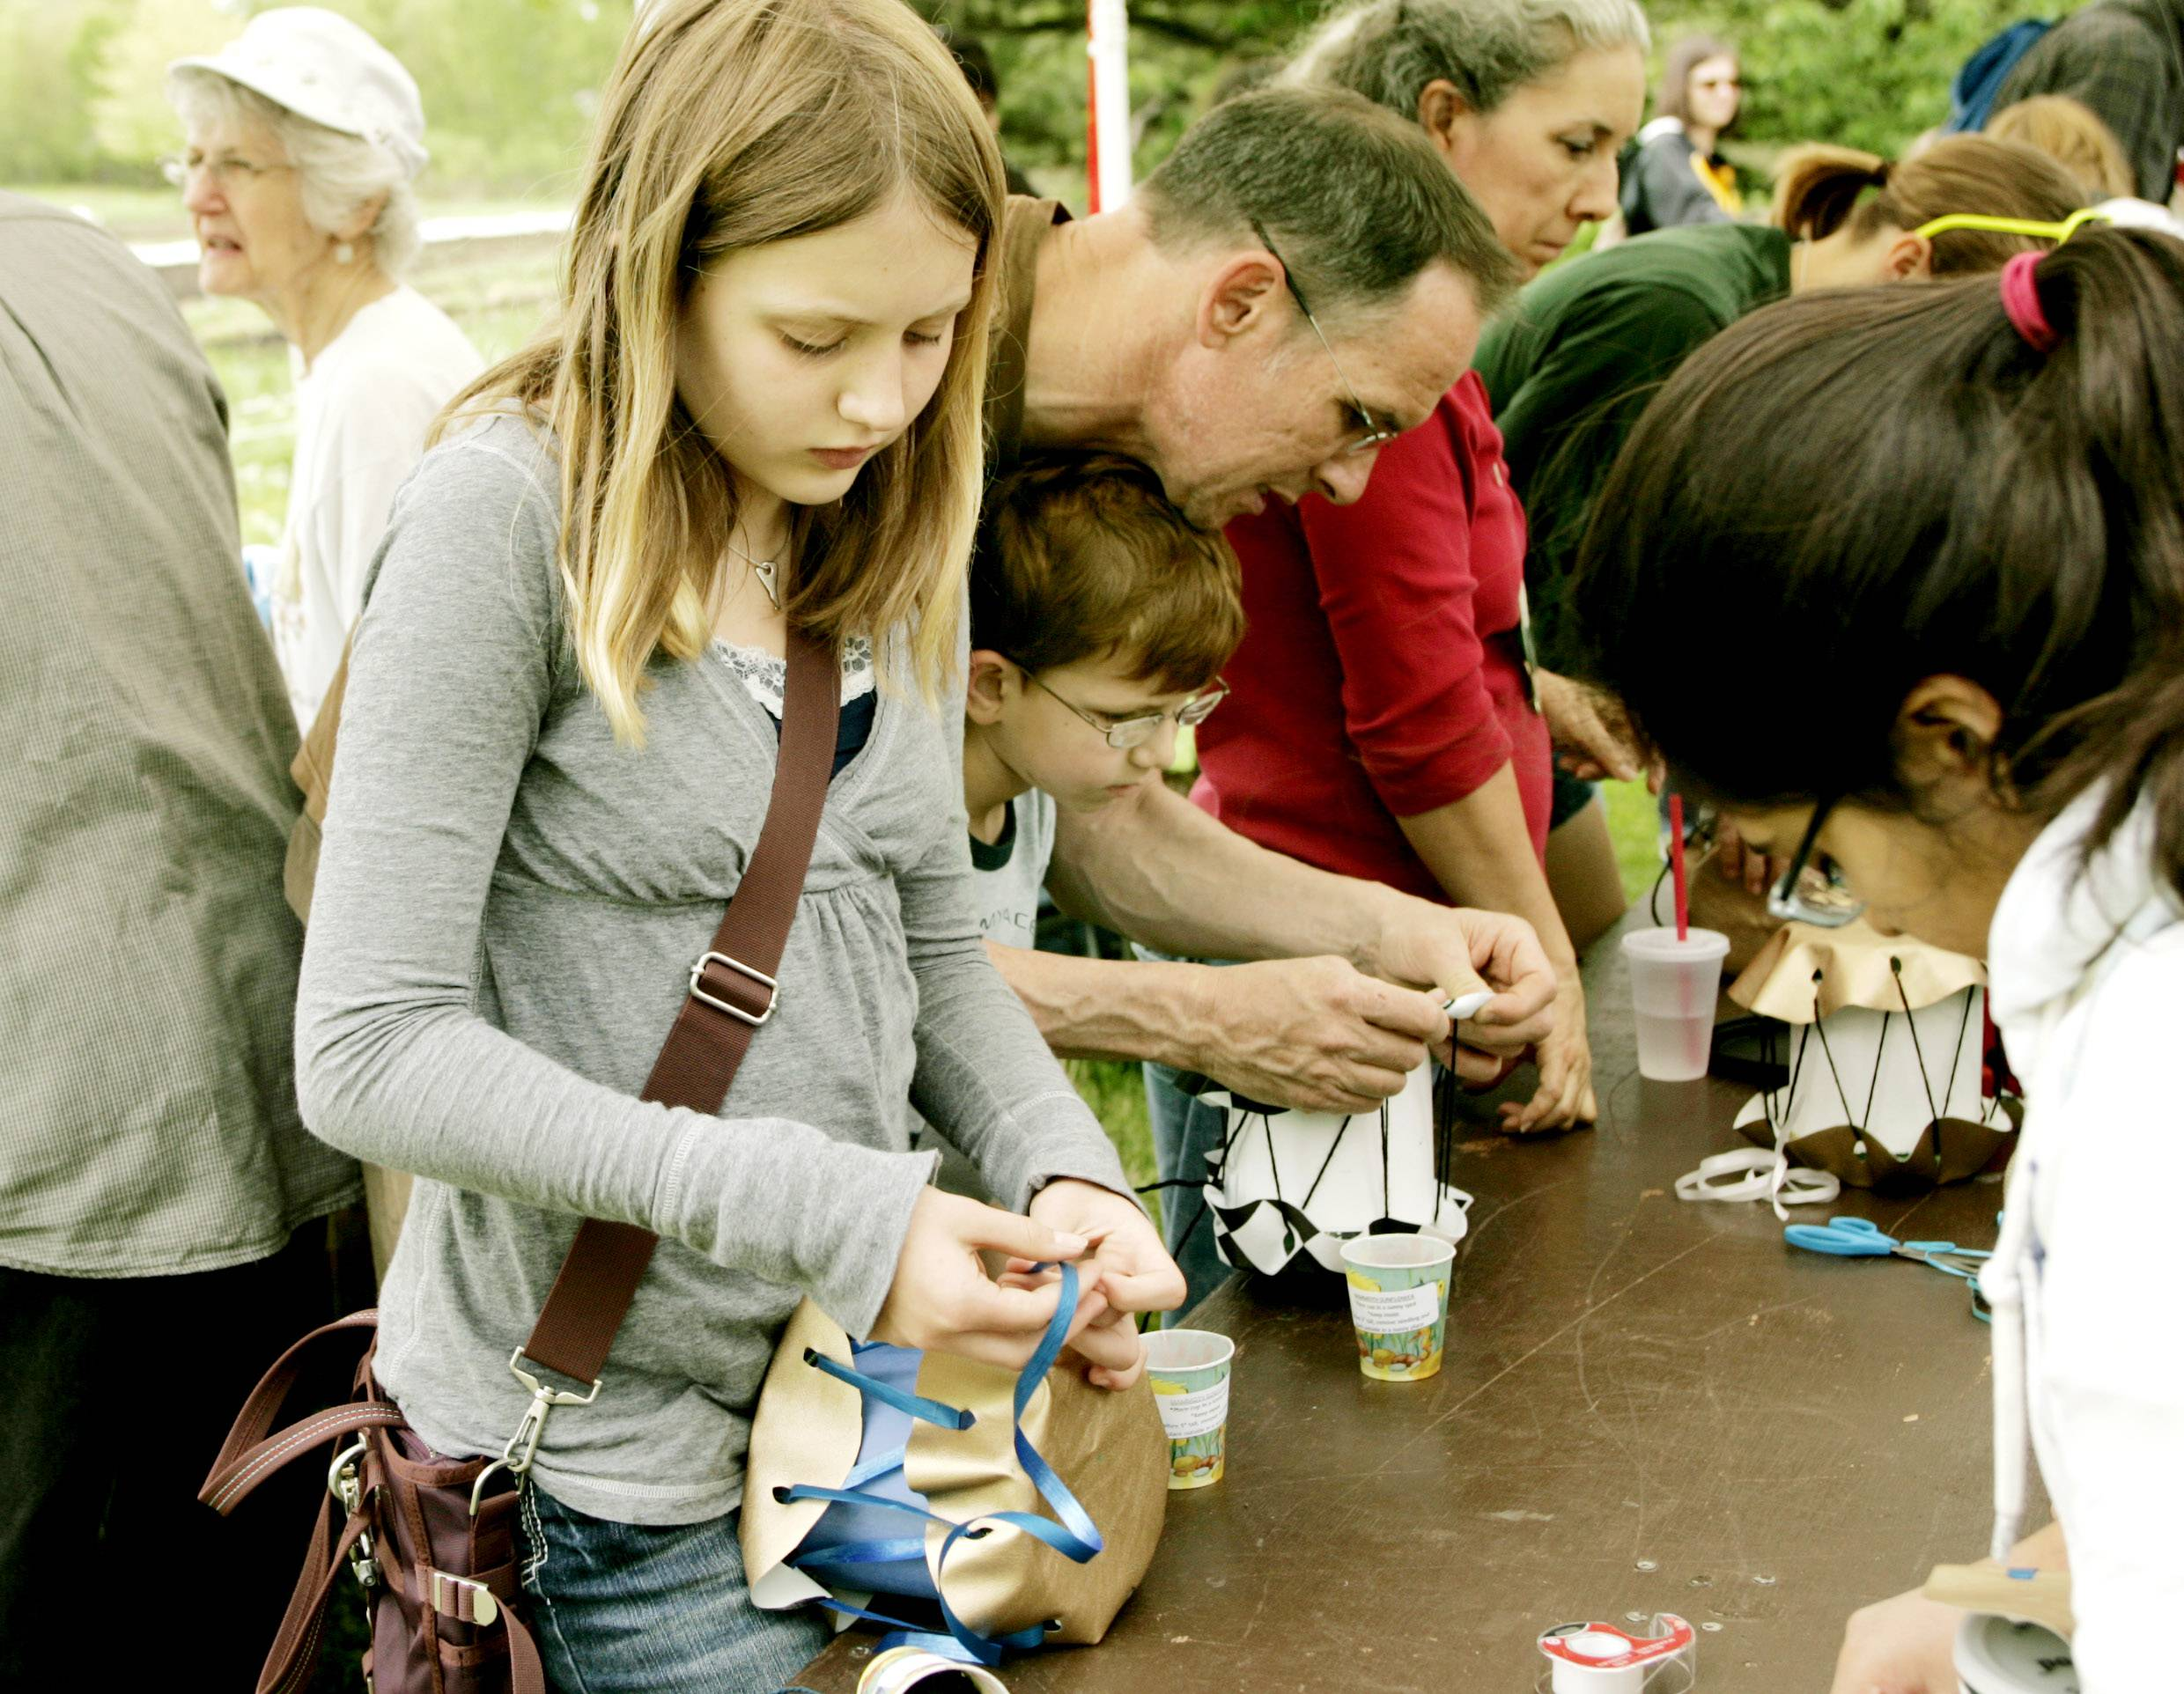 Green Earth Fair attendees can make recycled instruments such as drums out of coffee cans during the annual event from 12:30 to 5 p.m. Sunday, May 4, at McDonald Farm, 10S404 Knoch Knolls Road, Naperville.